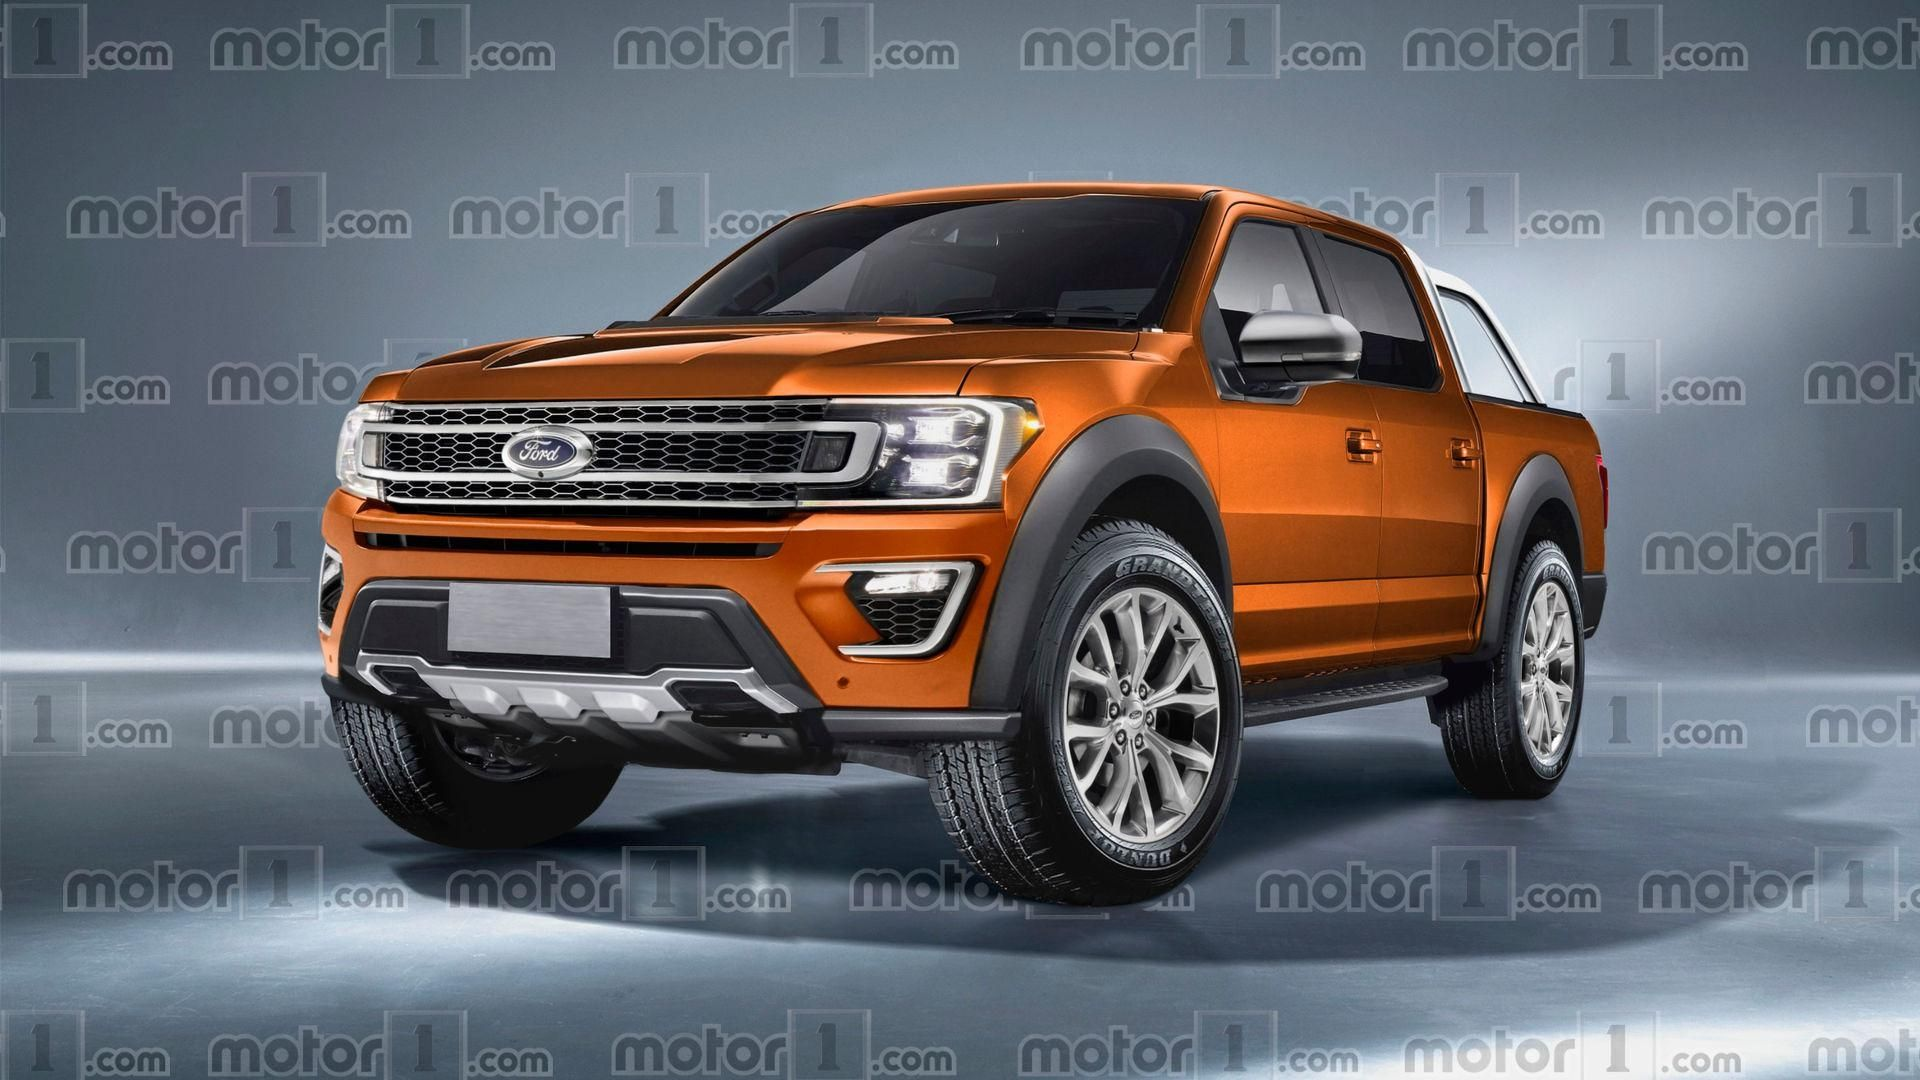 2019 Ford Ranger Usa Price | Car 2018 - 2019